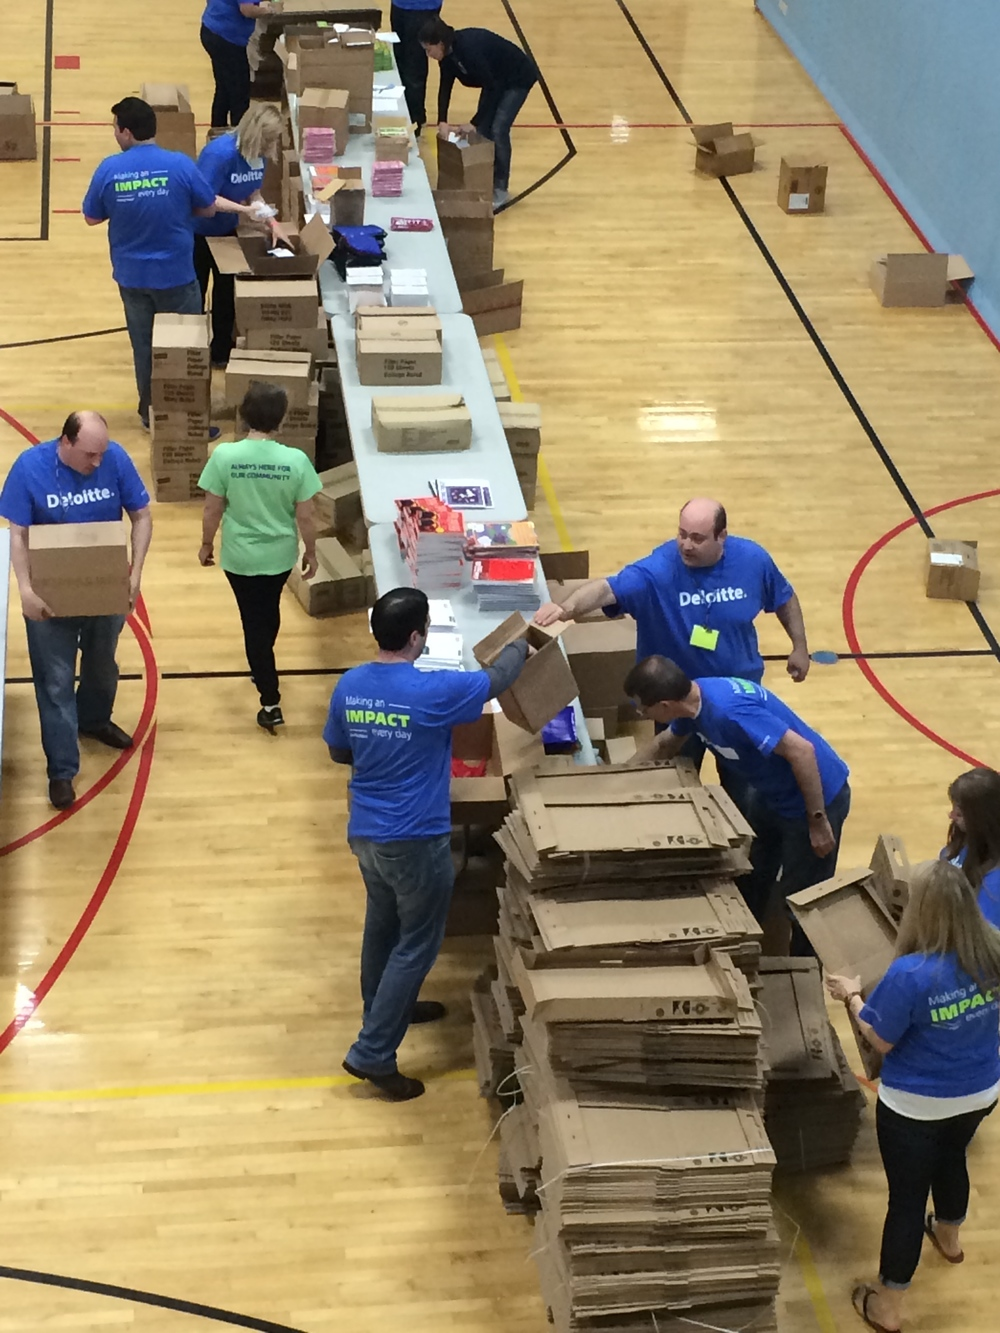 Deloitte Employees Participating in Build-A-Kit